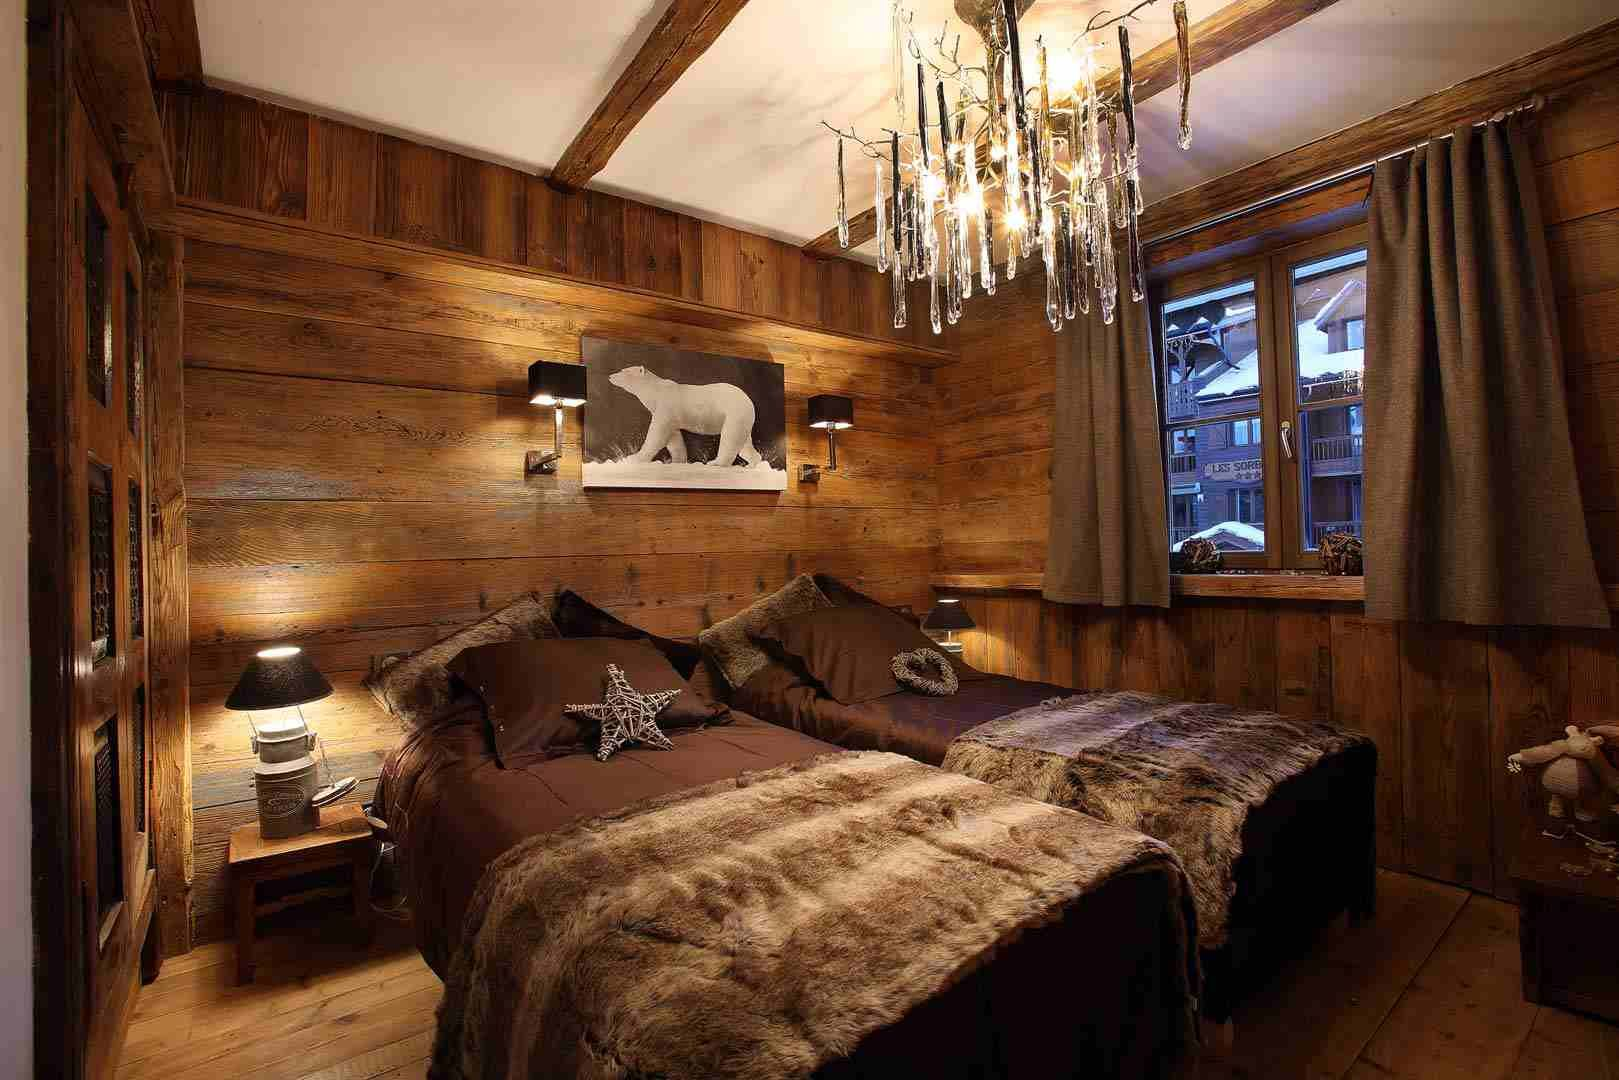 D co int rieur style chalet id es pour atmosph re chaleureuse rev tement en bois revetement for Interieur de chalet